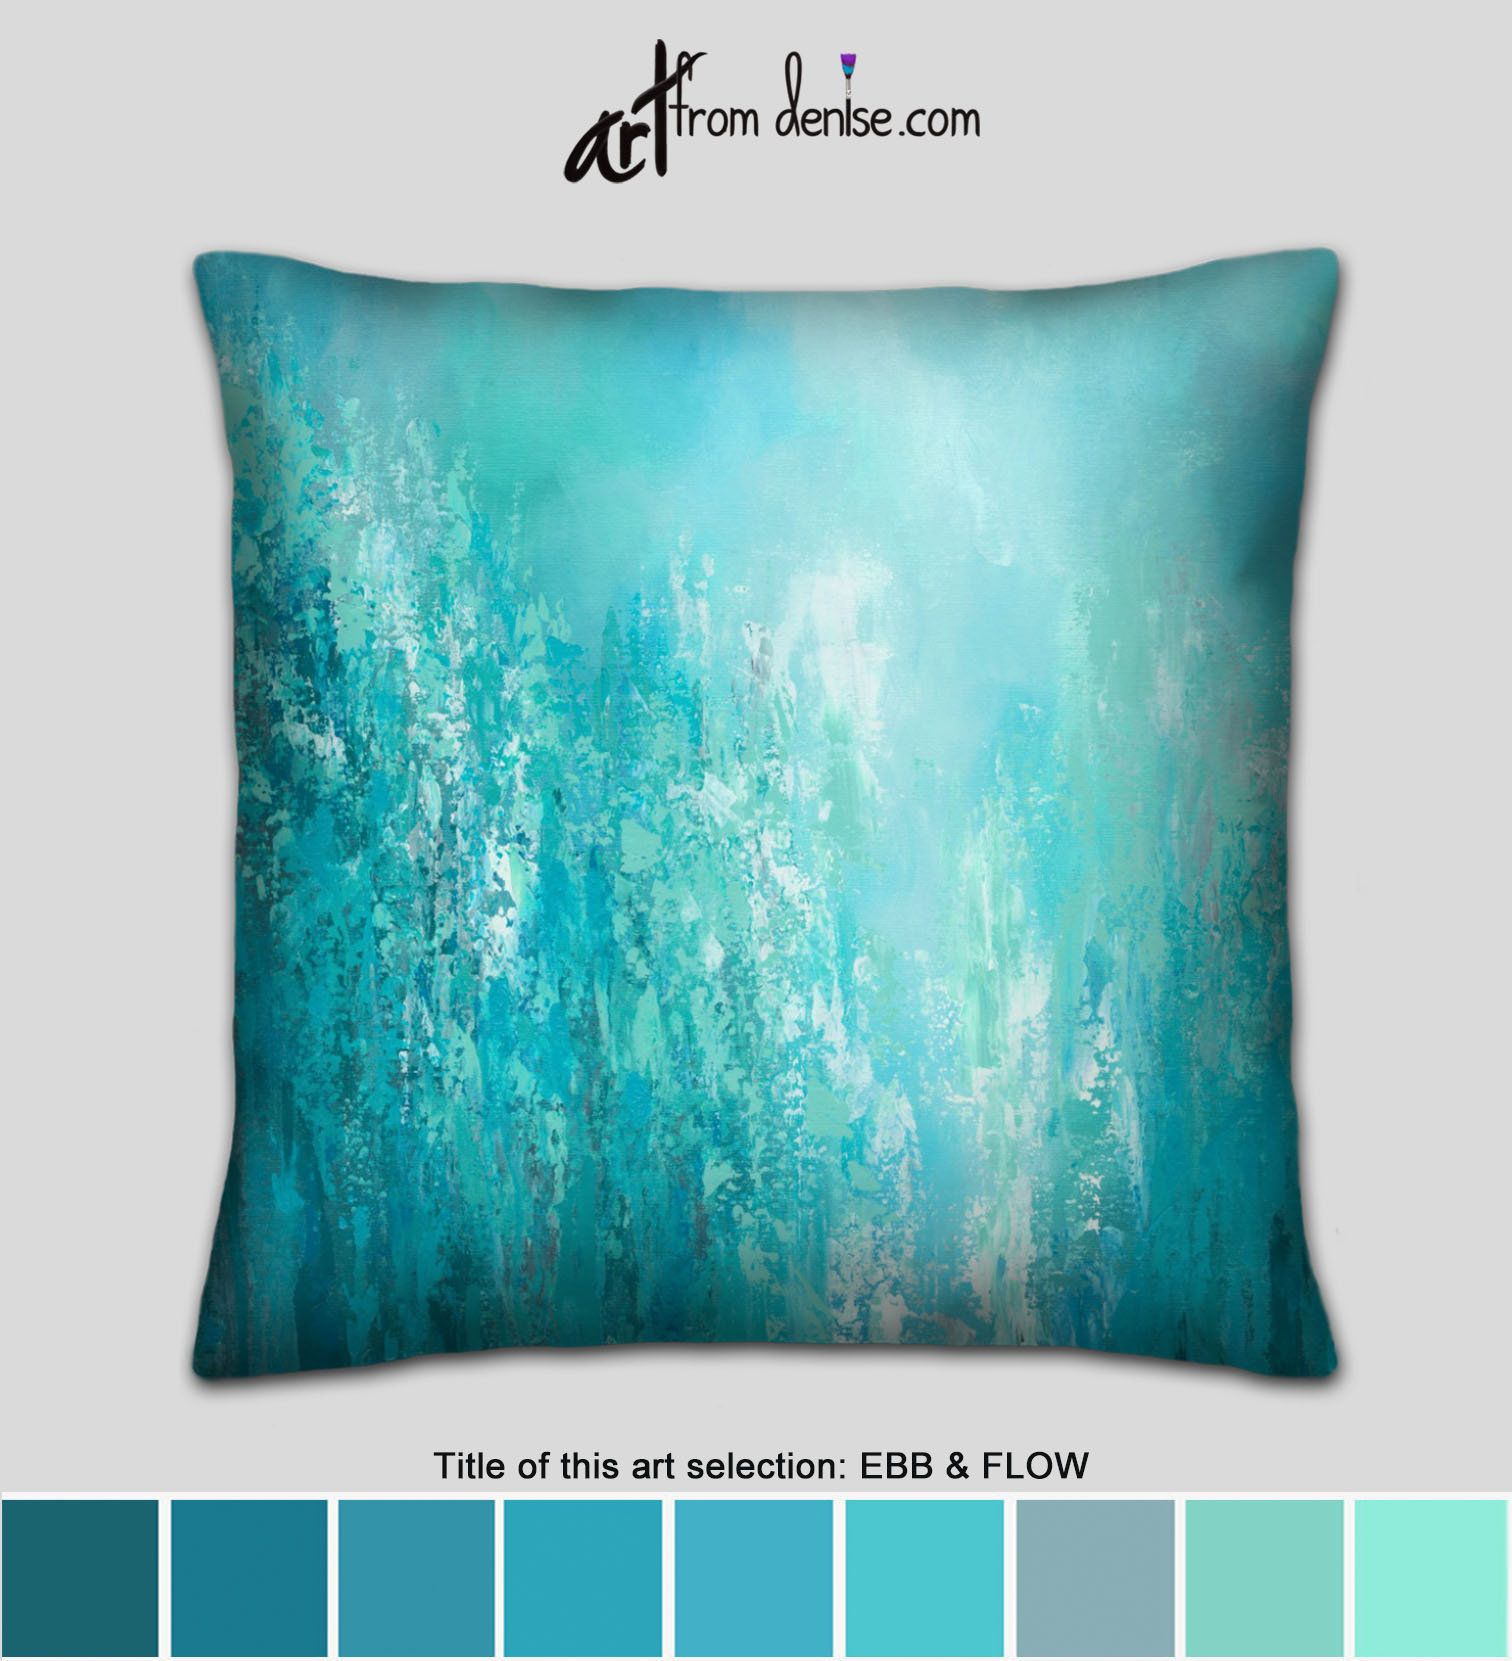 Oversized Turquoise Gray Teal Throw Pillows Or Decorative Accent